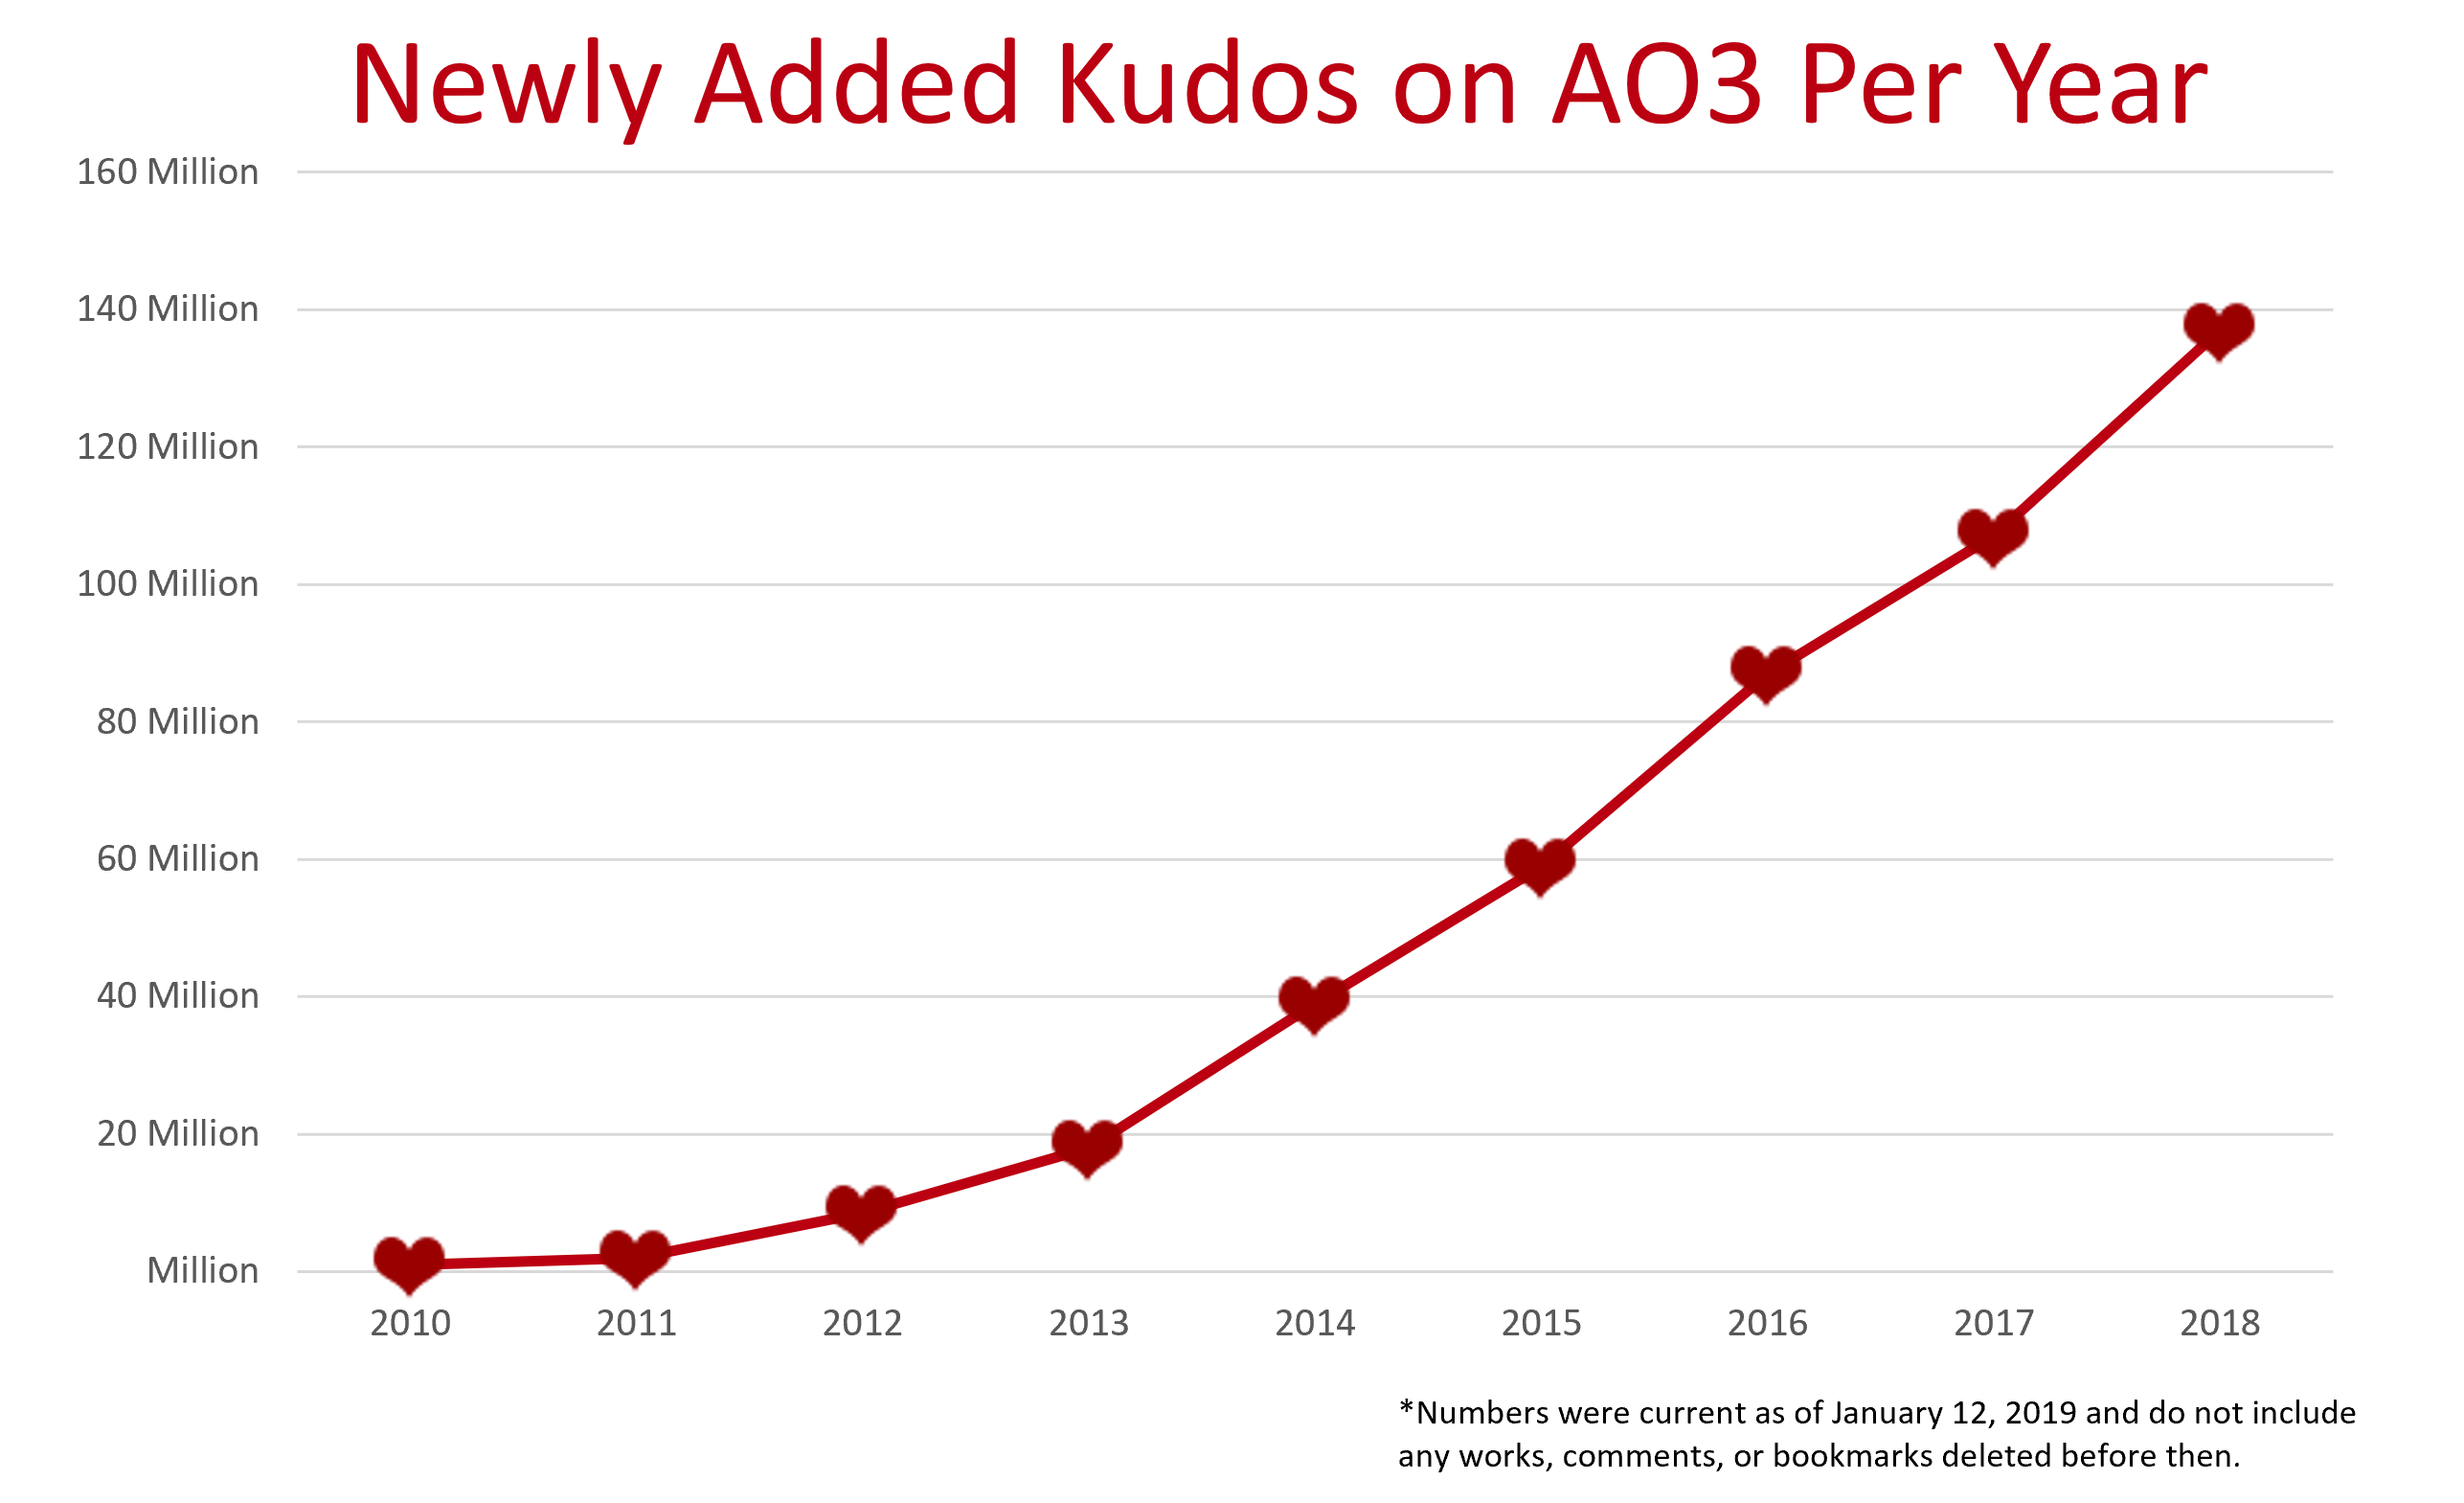 Newly Added Kudos on AO3 by year, from 2010 to 2018 (140 million)